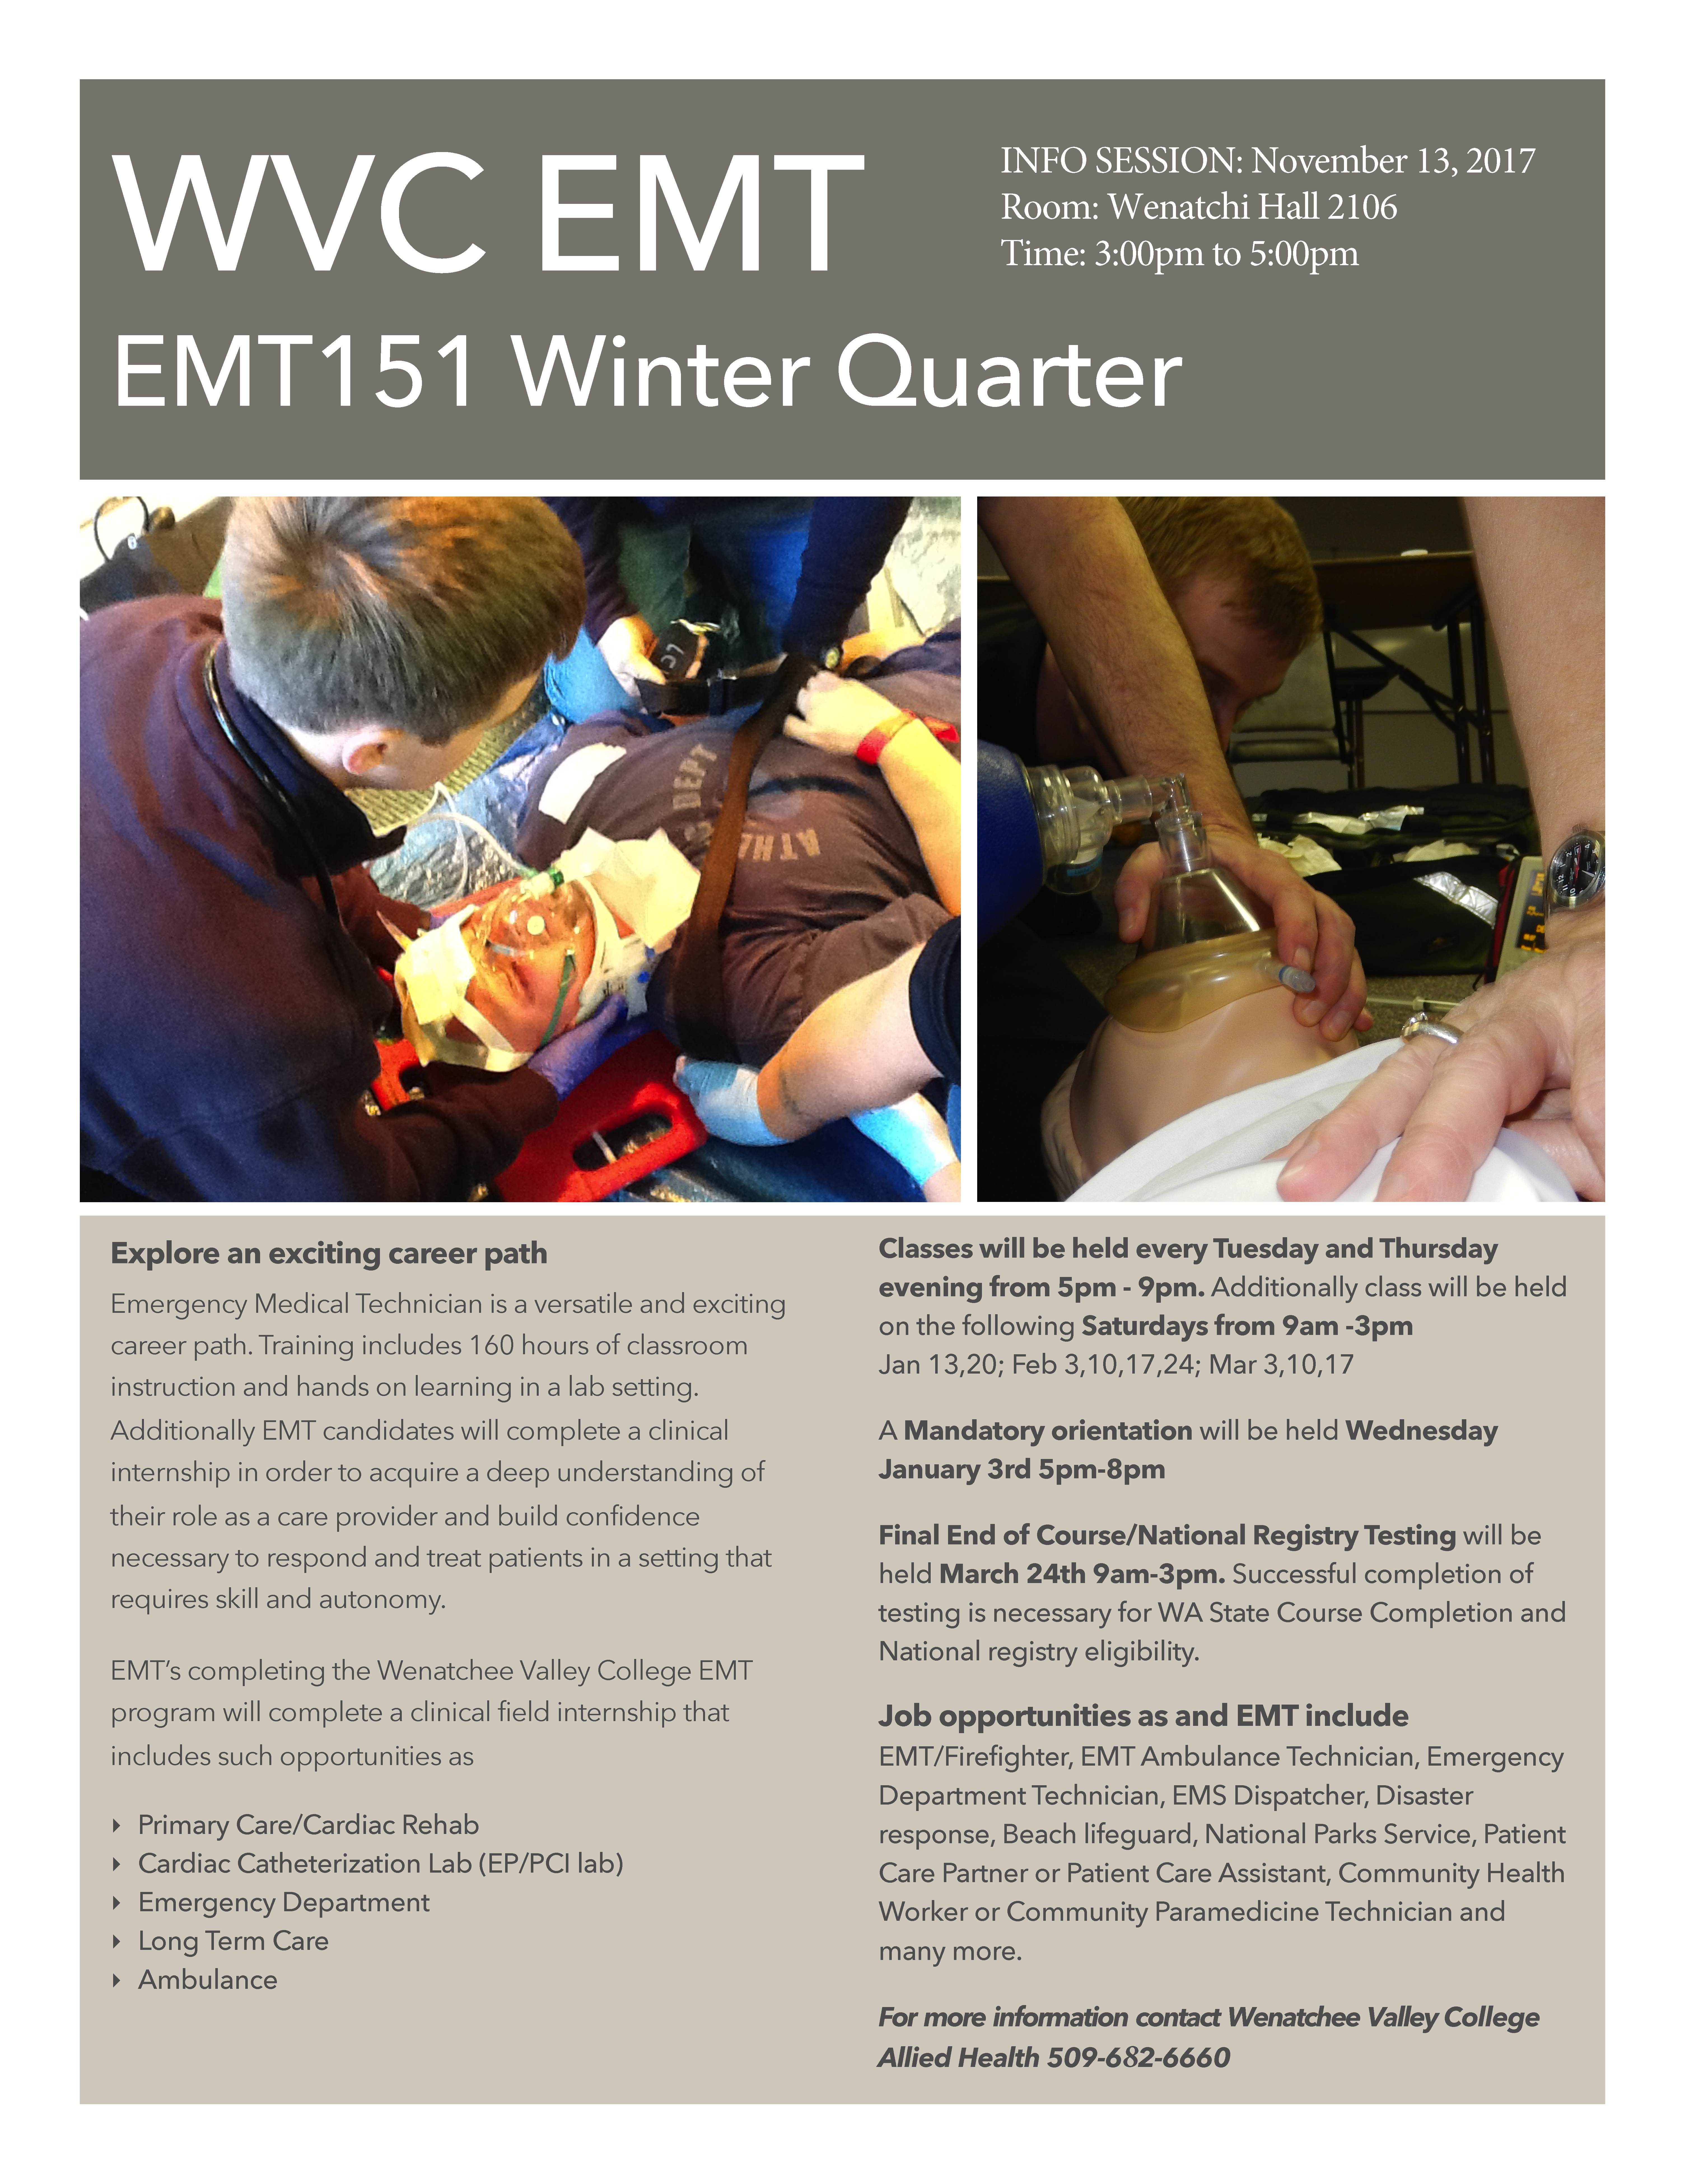 the responsibilities of an emergency medical technician emt during an emergency response